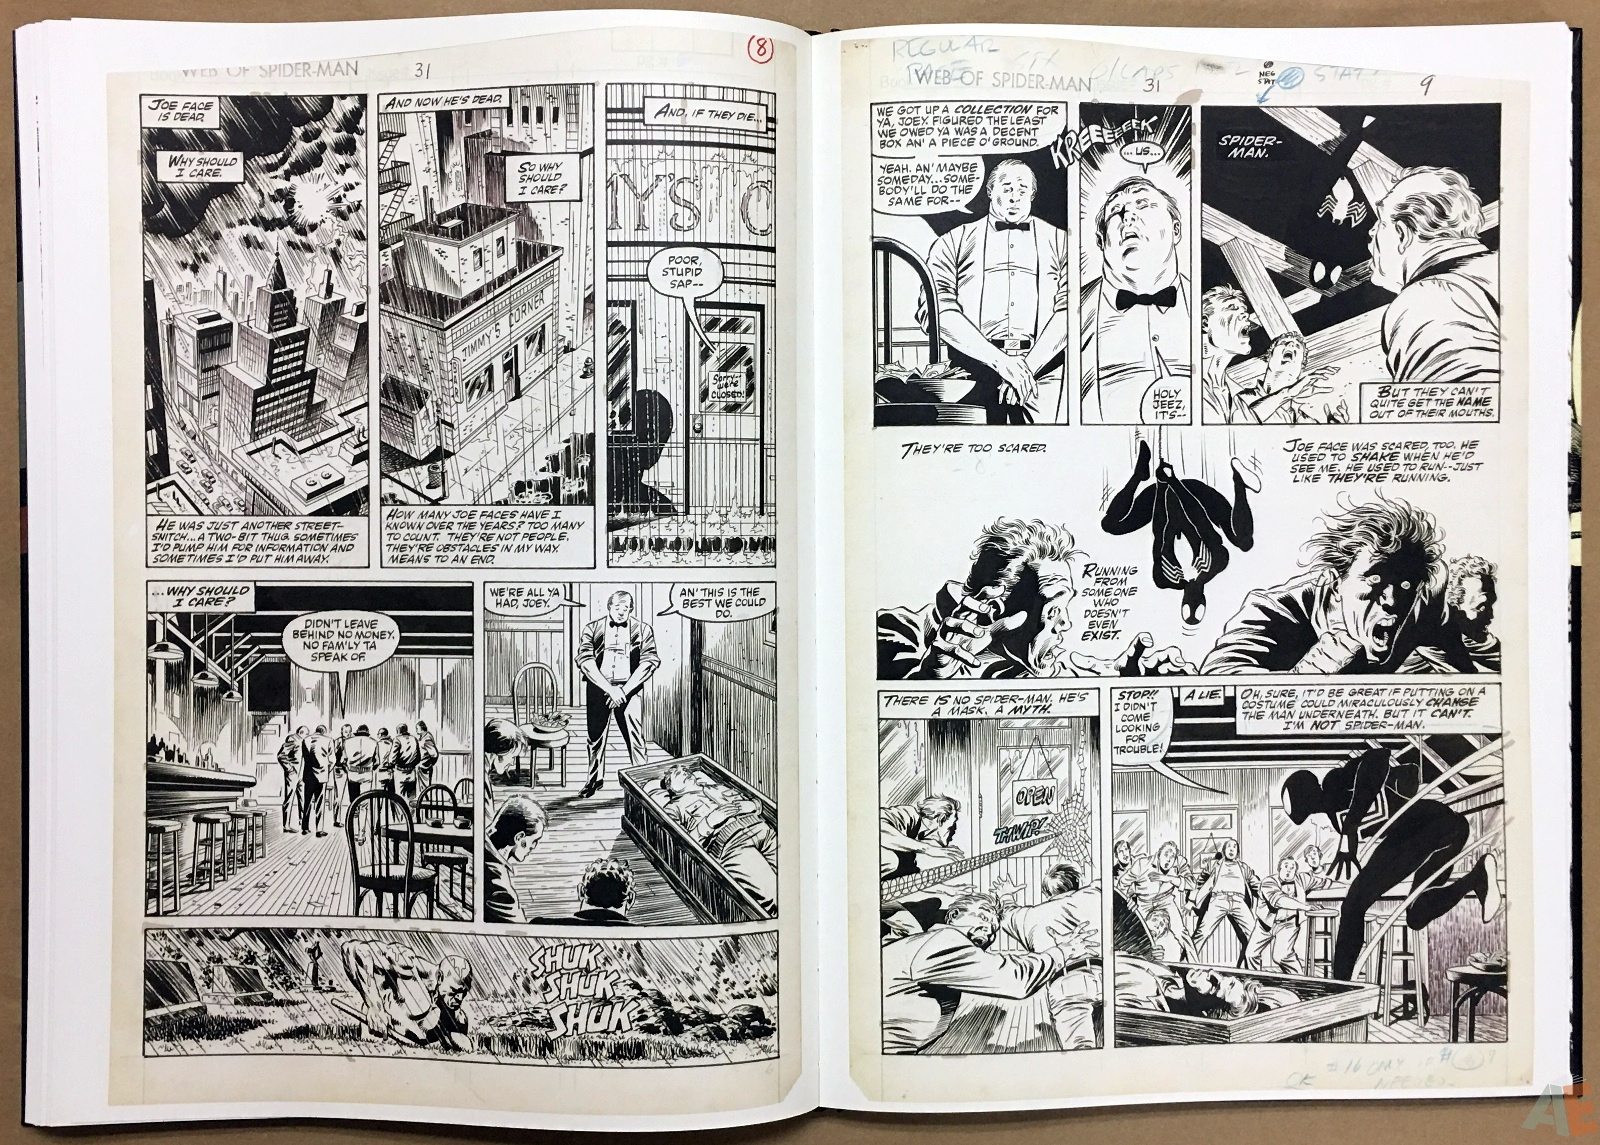 Mike Zeck's Classic Marvel Stories Artist's Edition 34